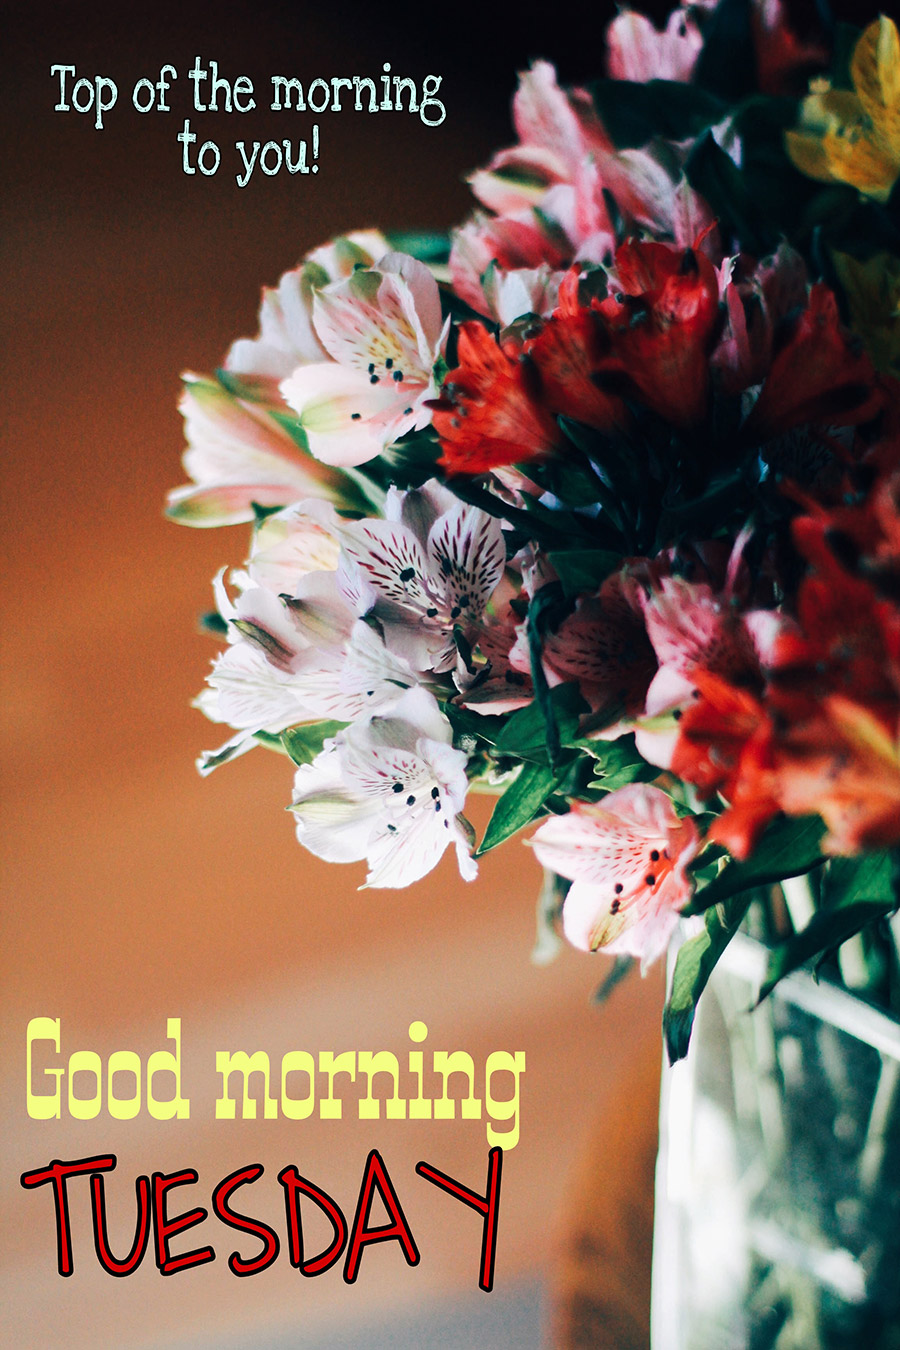 Good morning tuesday image with colorful flowers